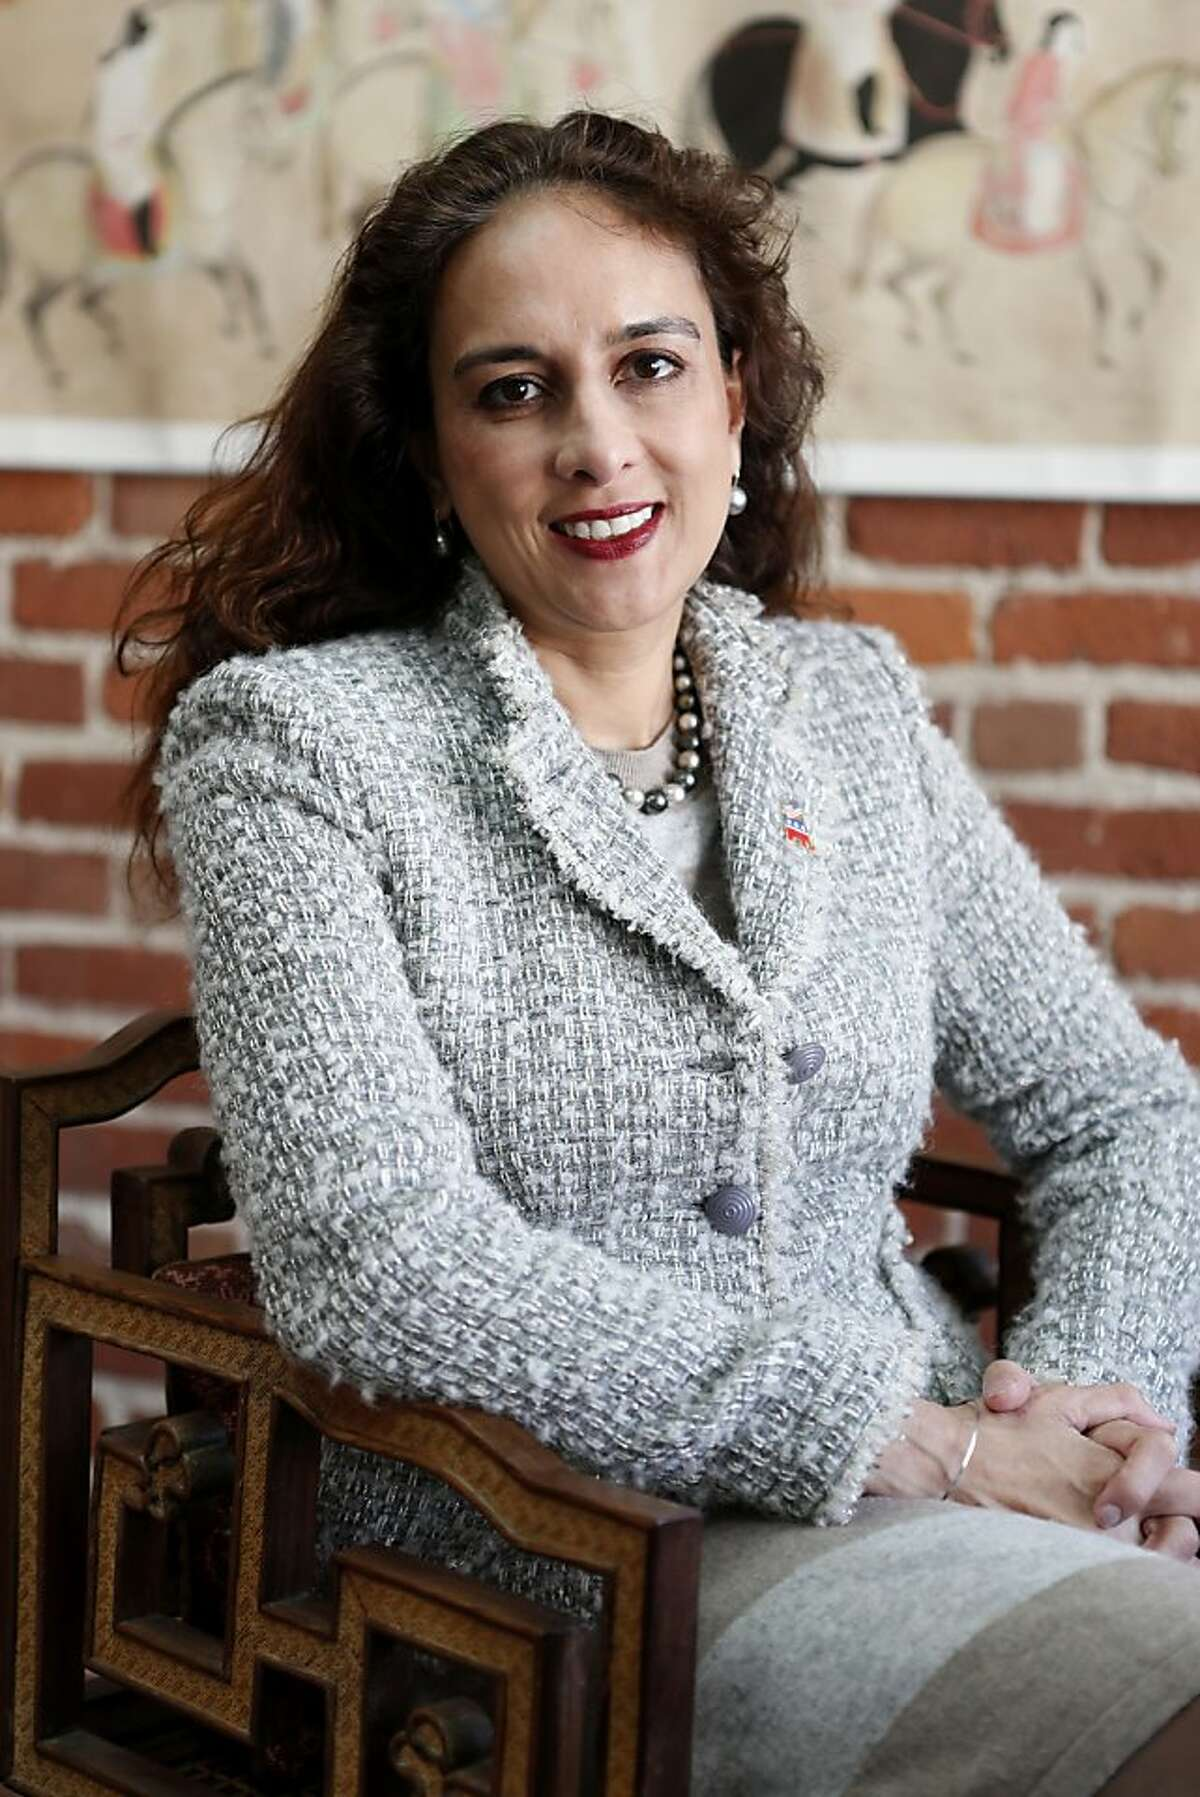 Harmeet Dhillon, attorney and candidate for California's Republican Party vice chairman, poses in her office on Tuesday, February 5, 2013 in San Francisco, Calif.